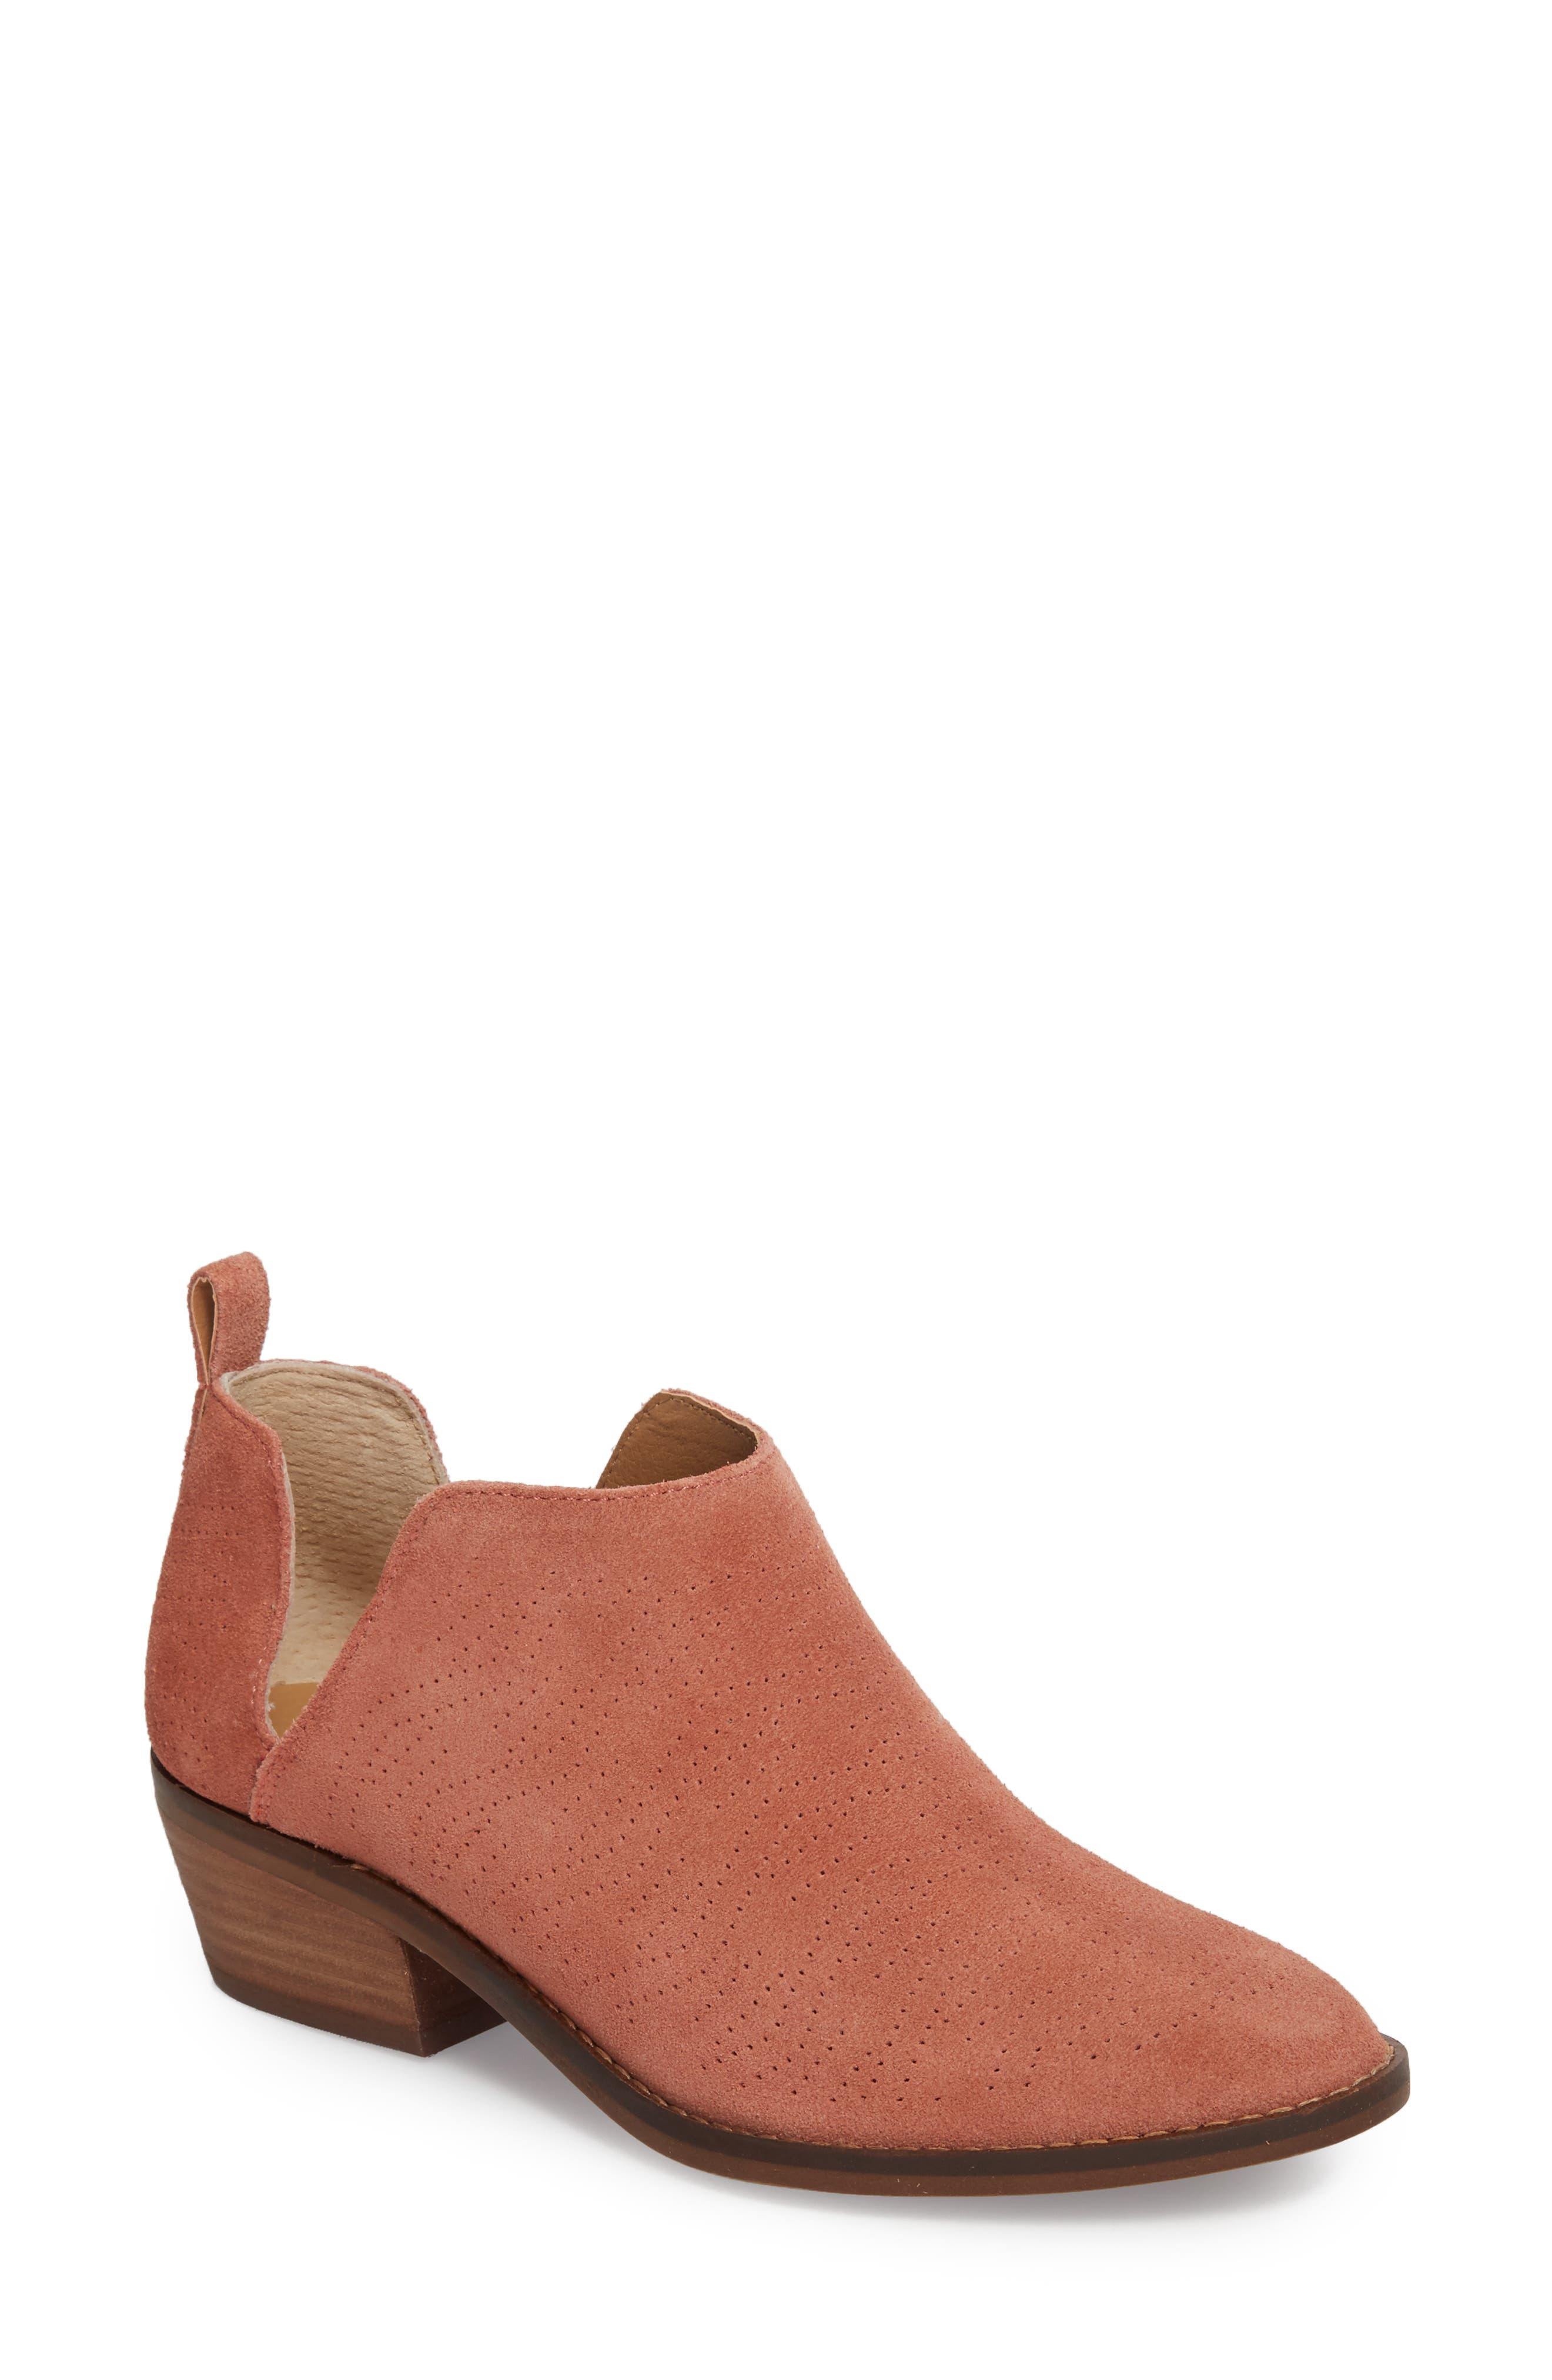 Fayth Bootie,                         Main,                         color, Canyon Rose Suede